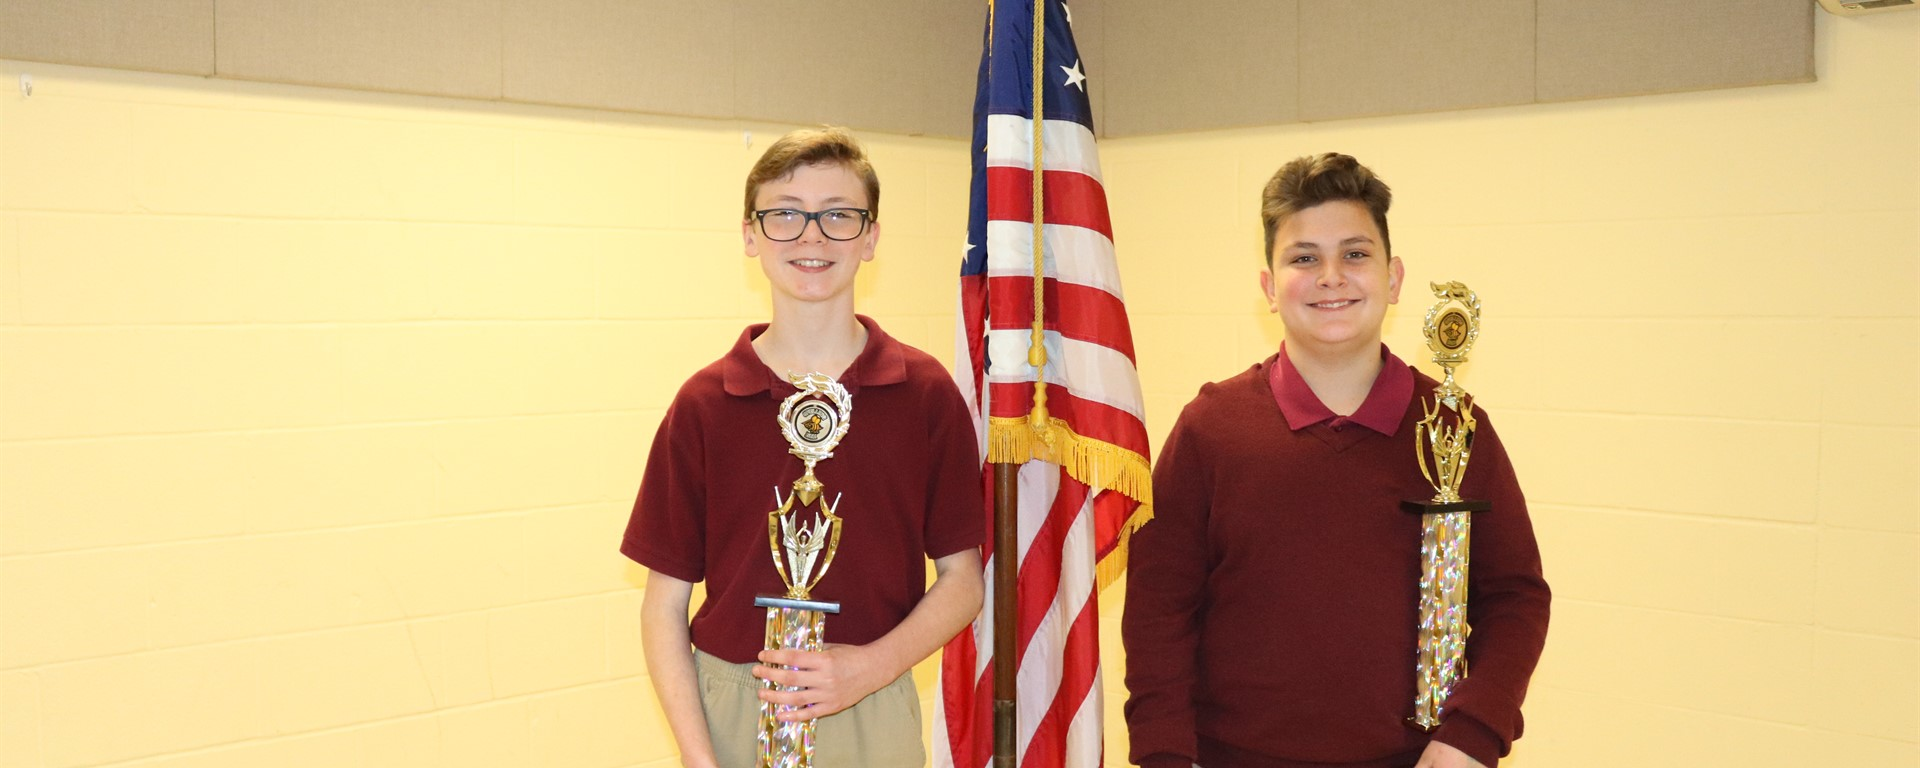 Clara School Students place 1st and 2nd in Wayne County District Spelling Bee